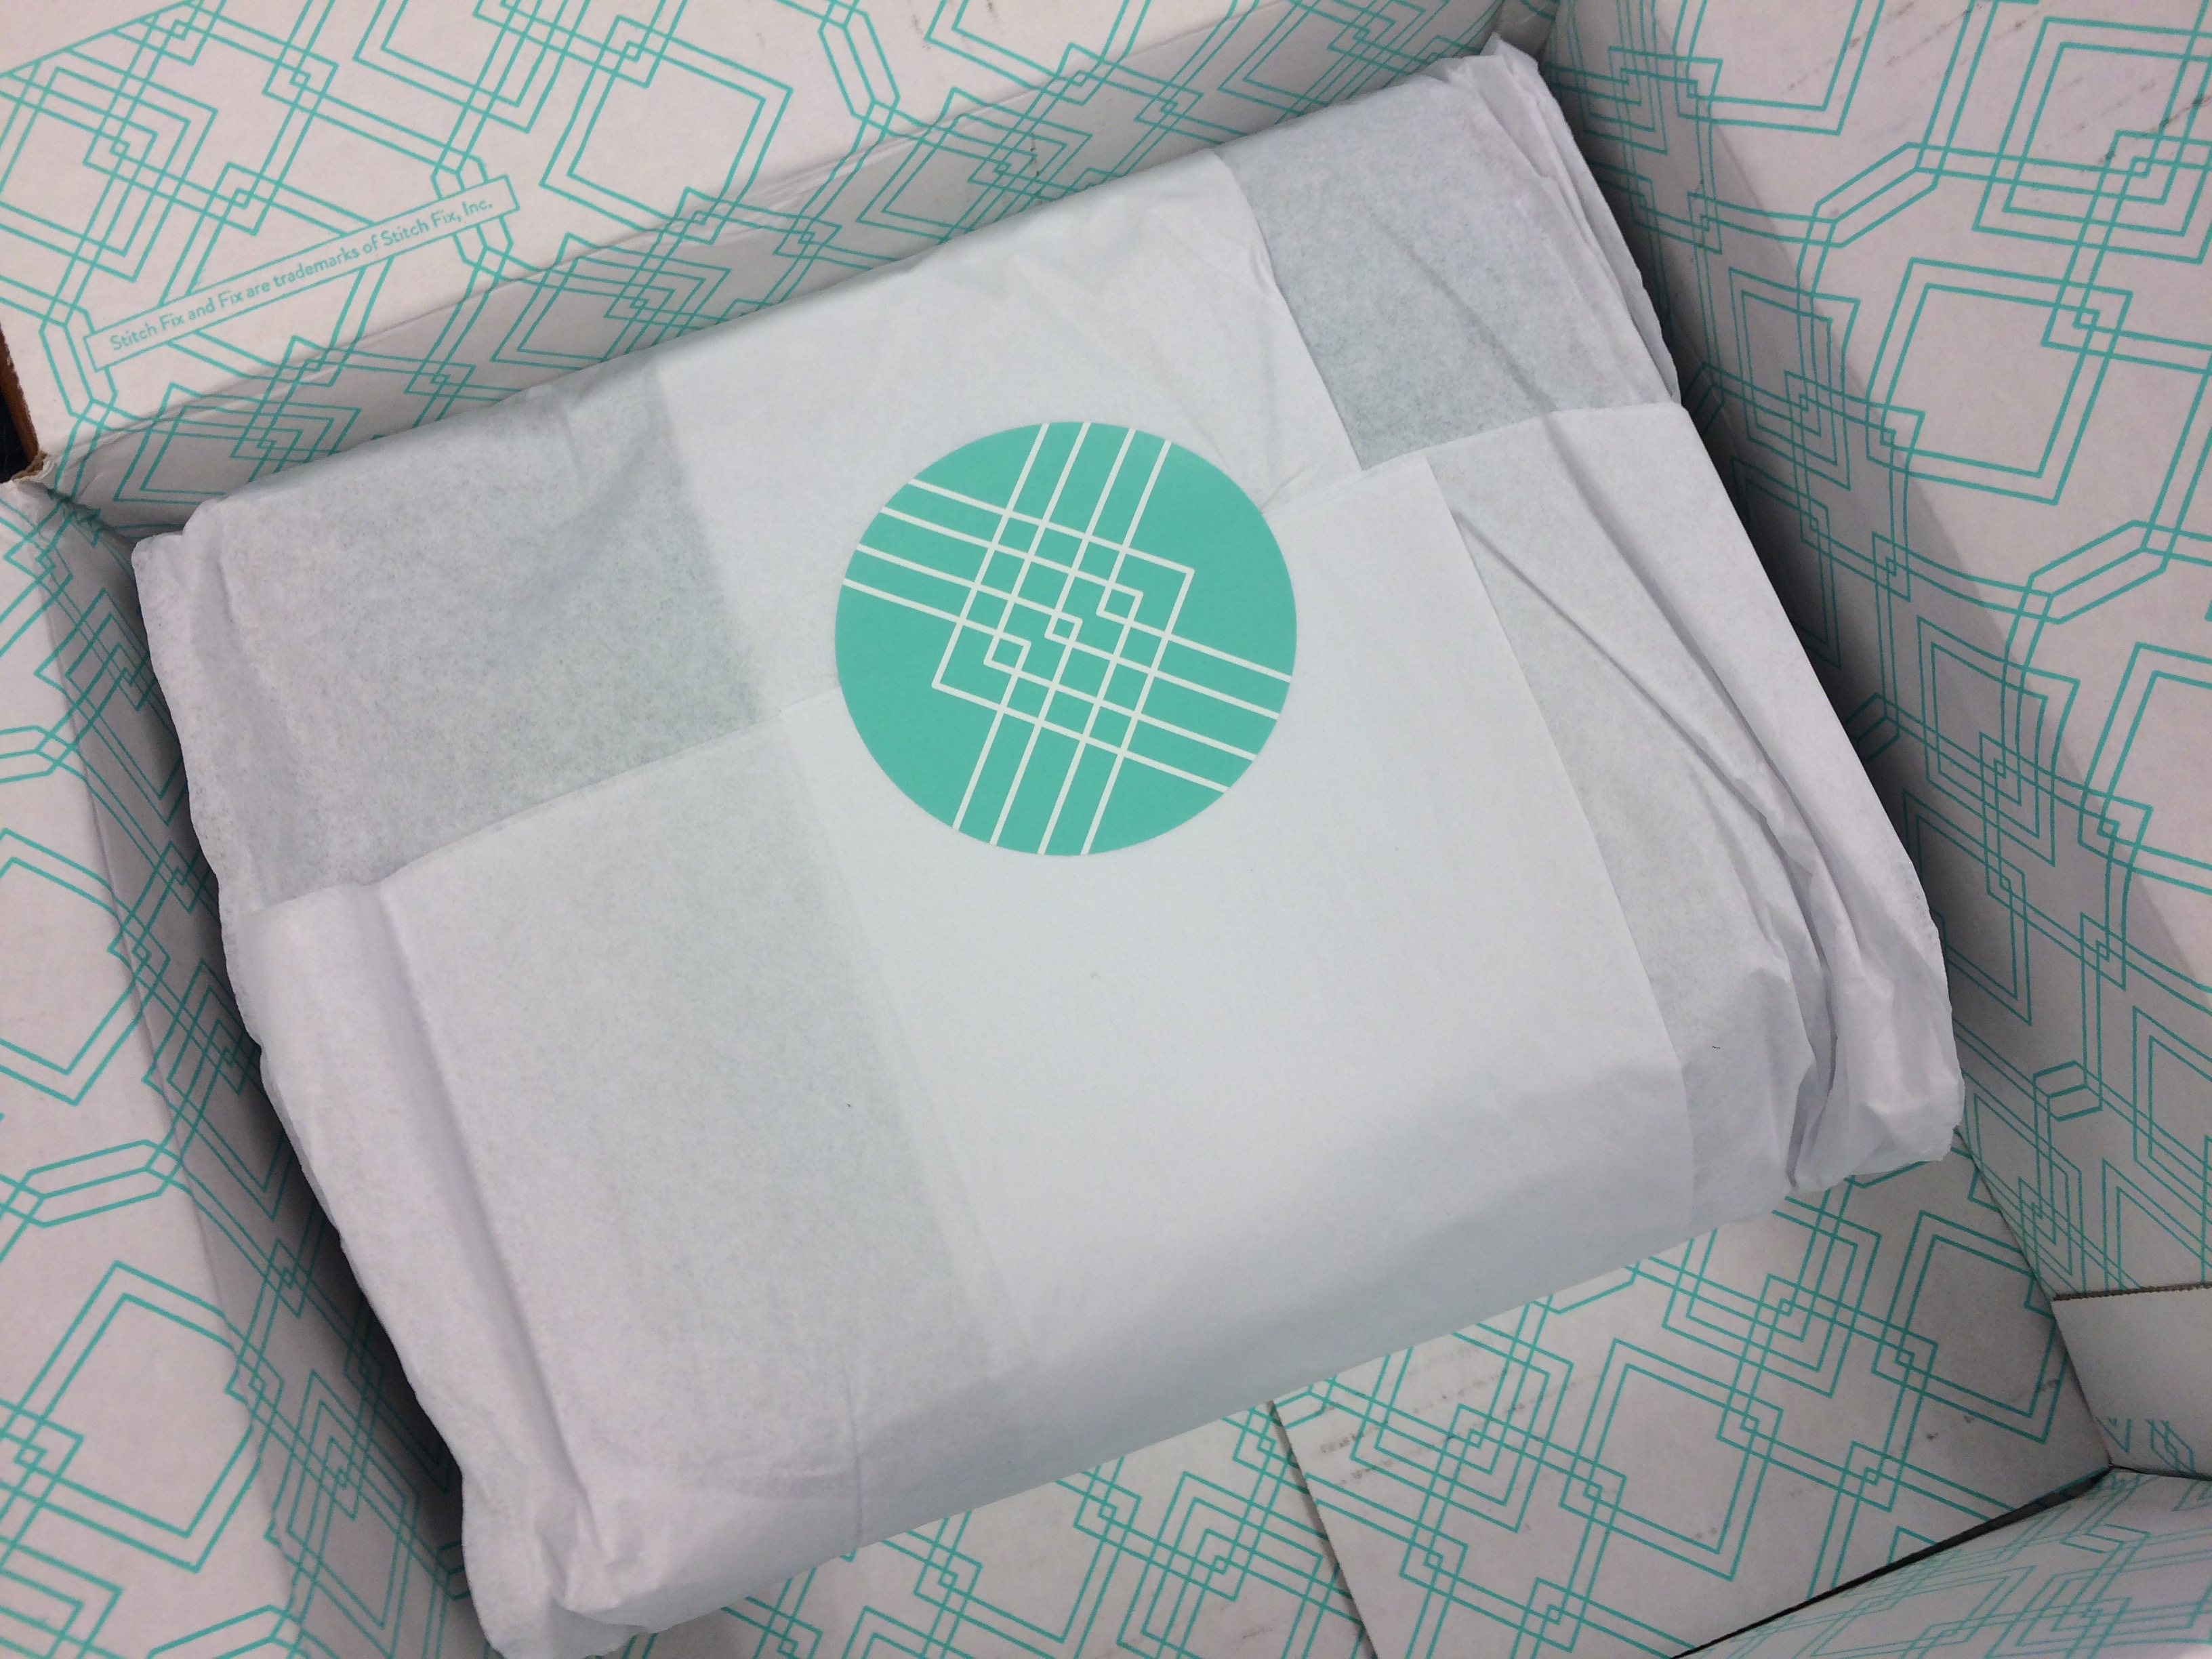 Referral Code: https://www.stitchfix.com/referral/5412038